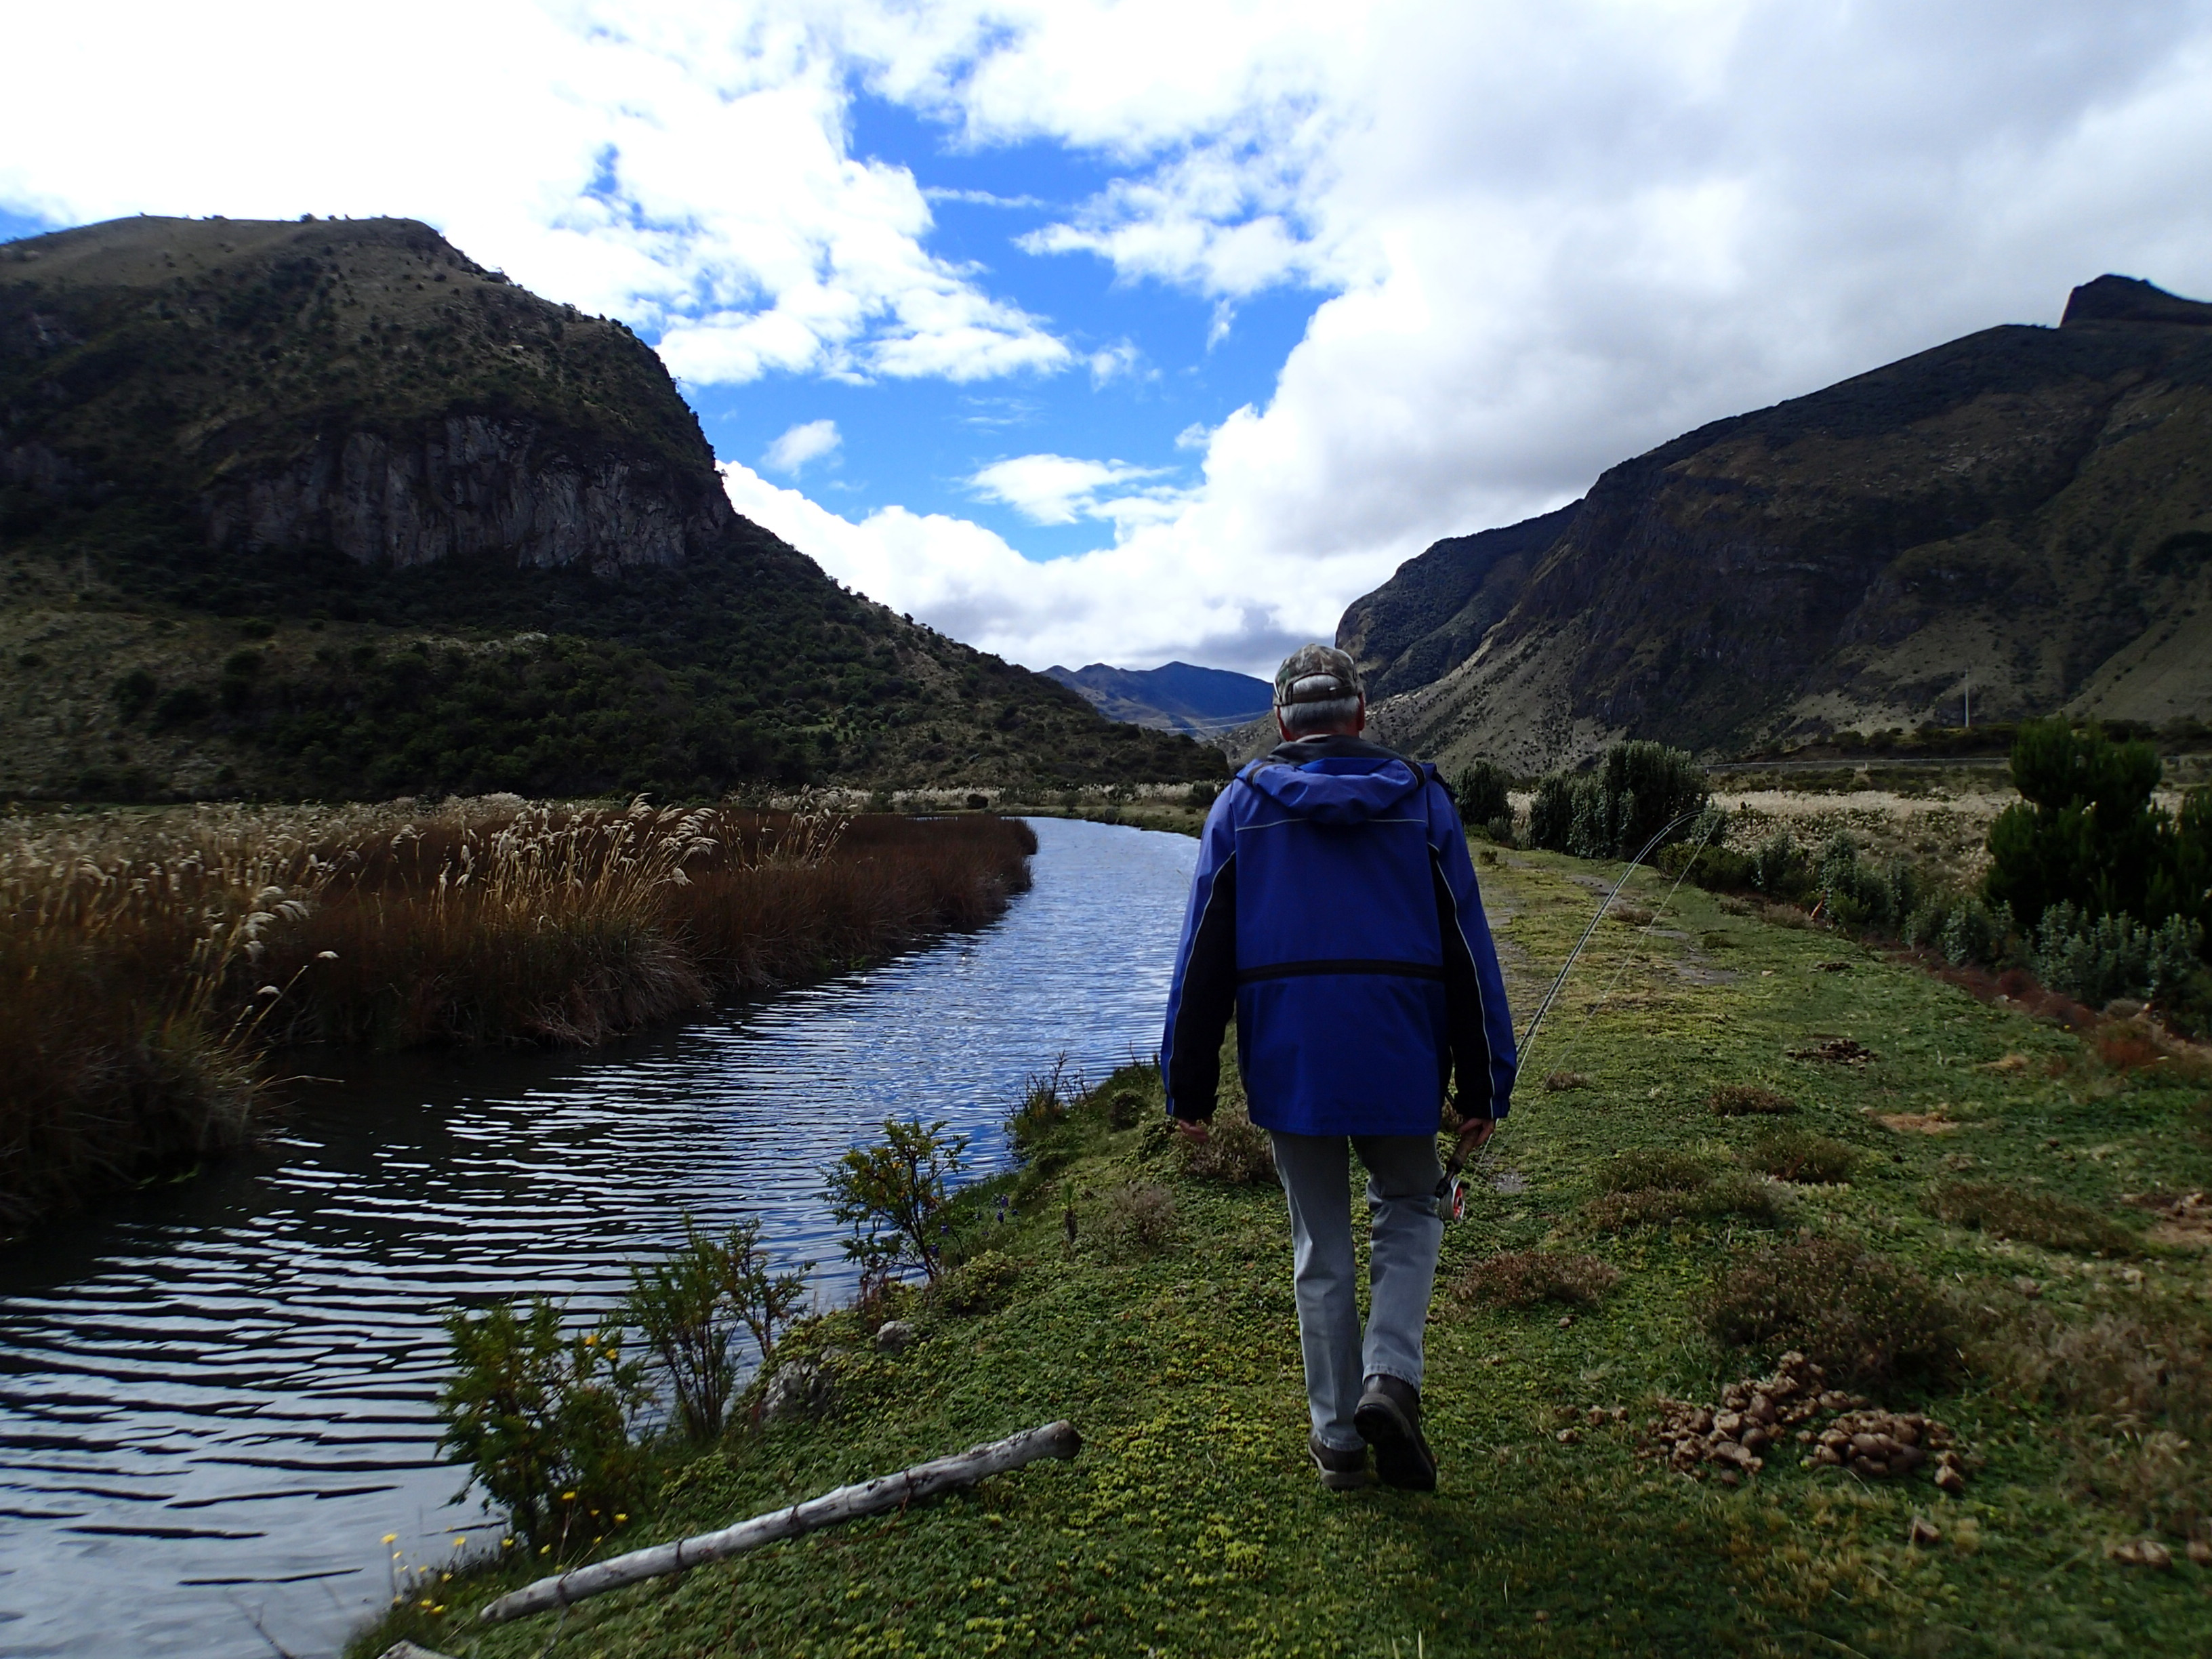 Campuchoca lodge near quito ecuador for Fly fishing spots near me